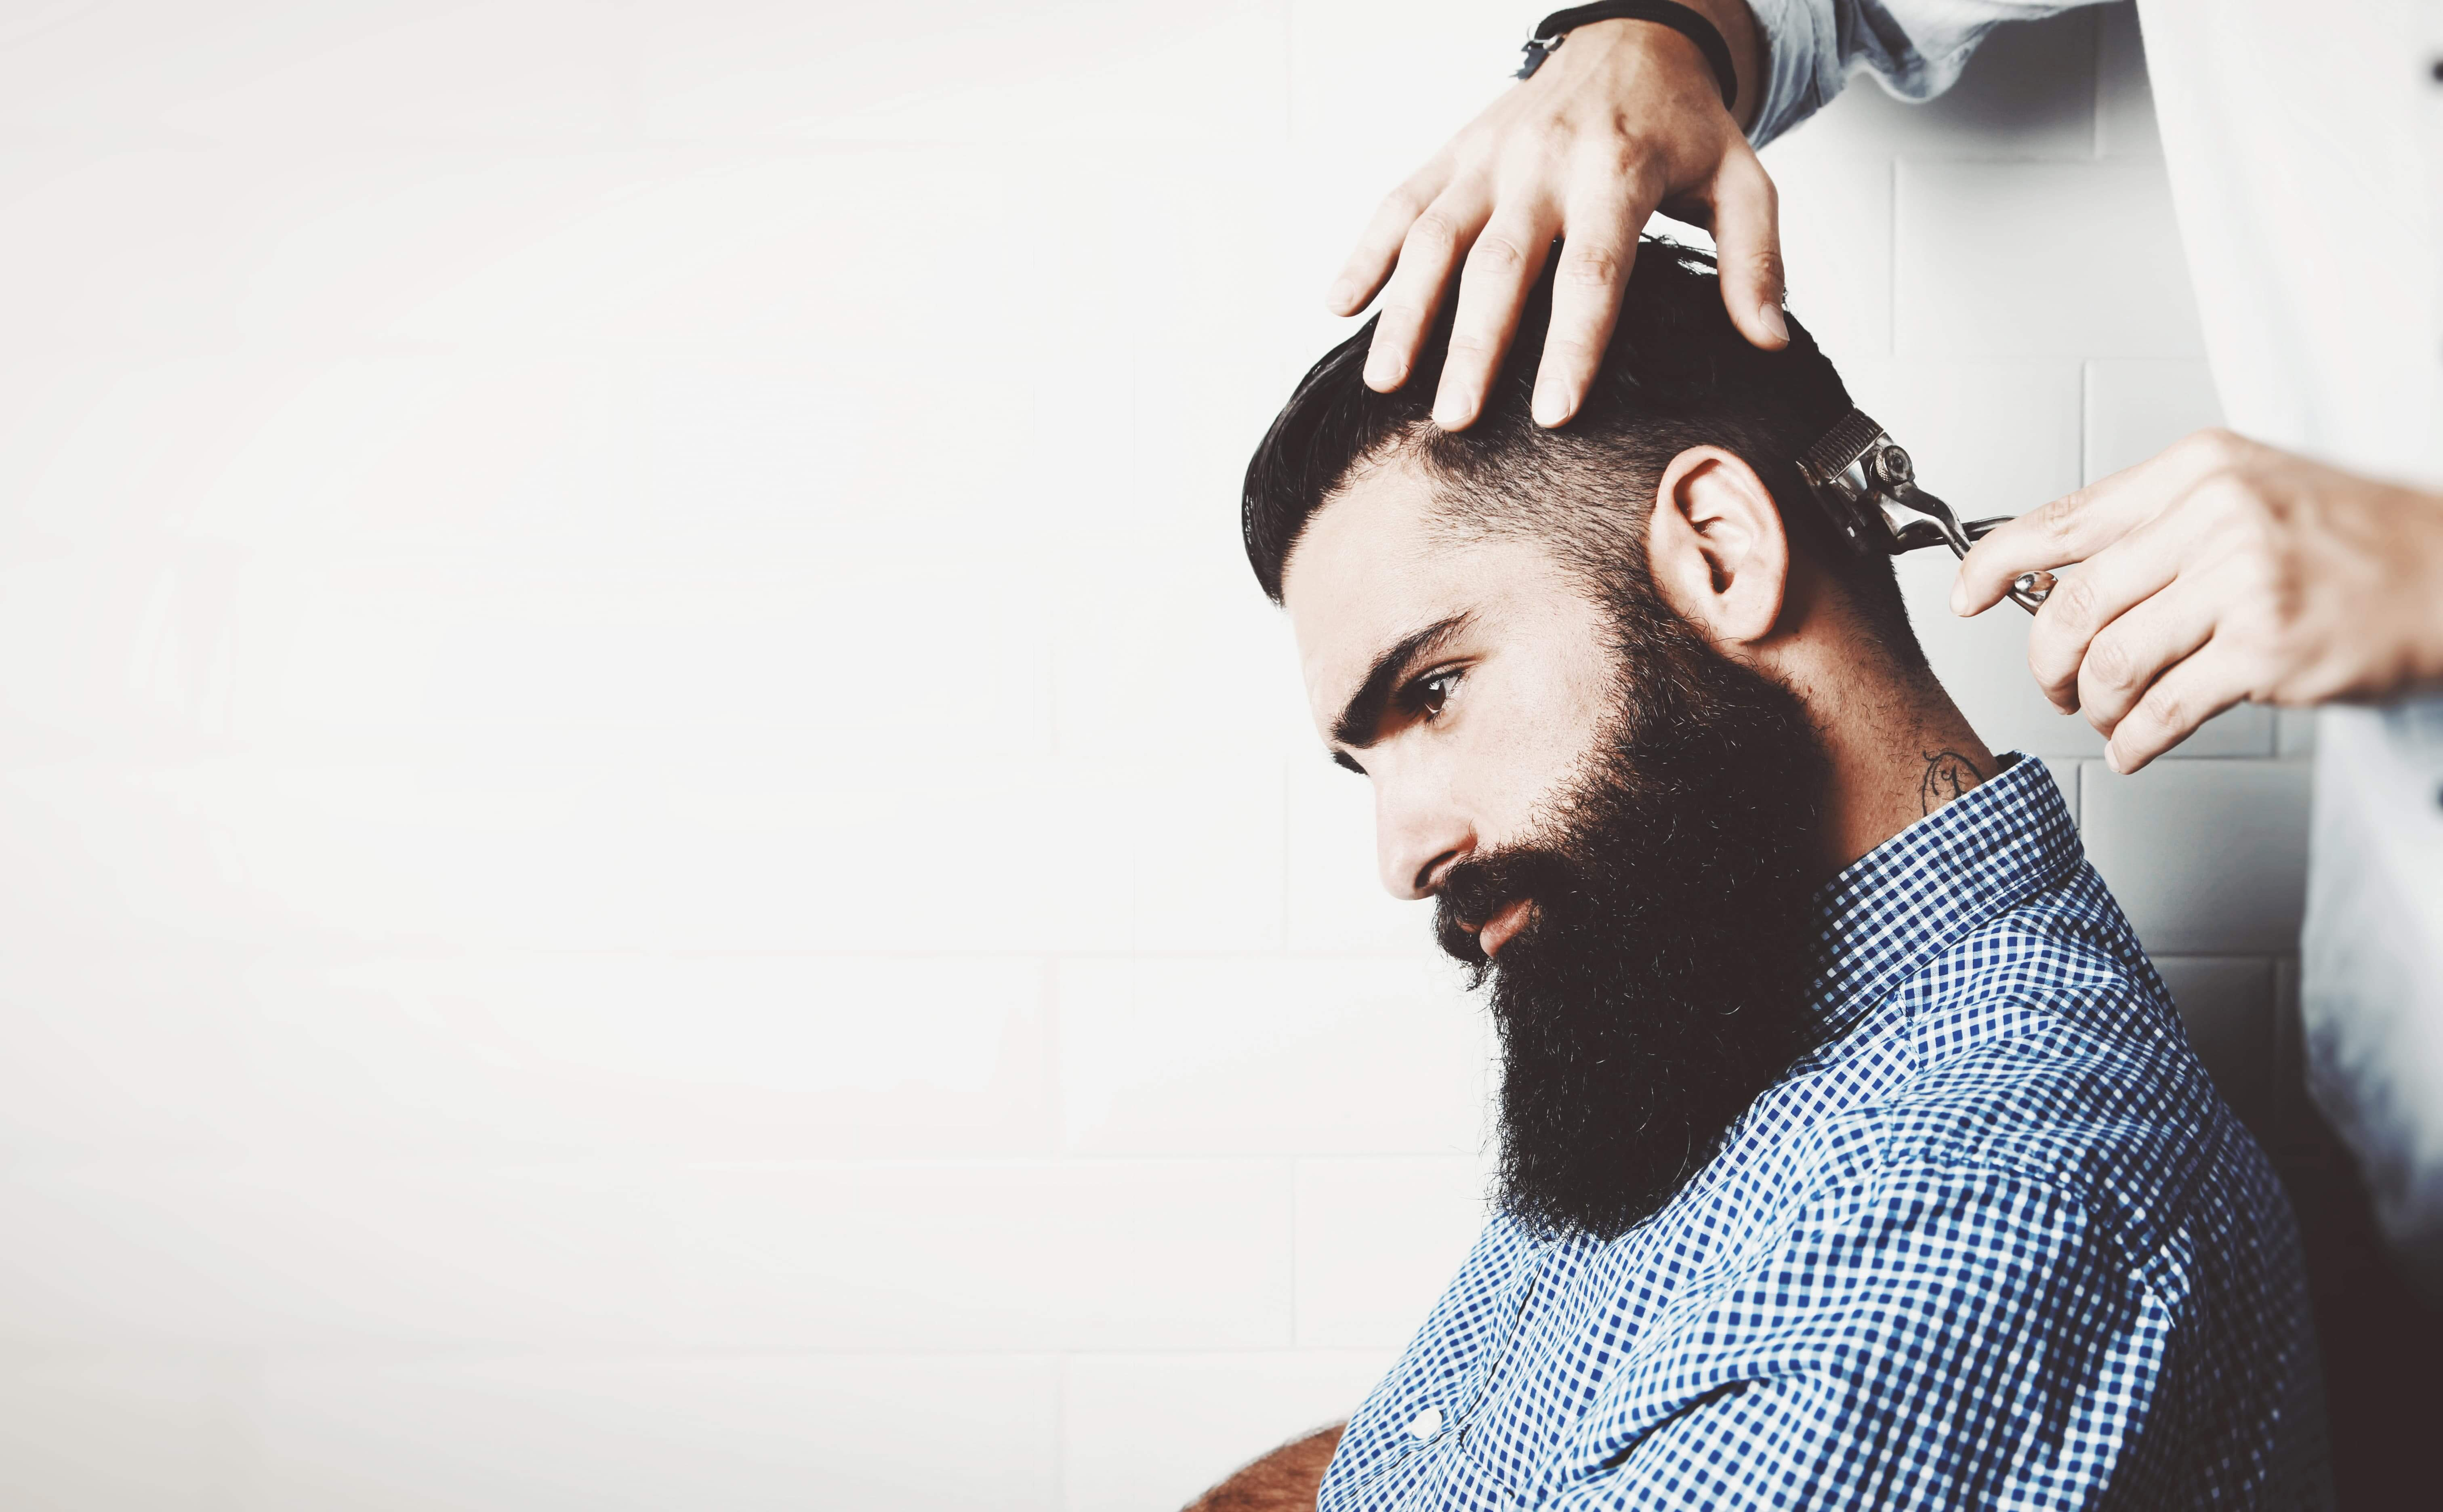 Start mobile barber small business or freelancing